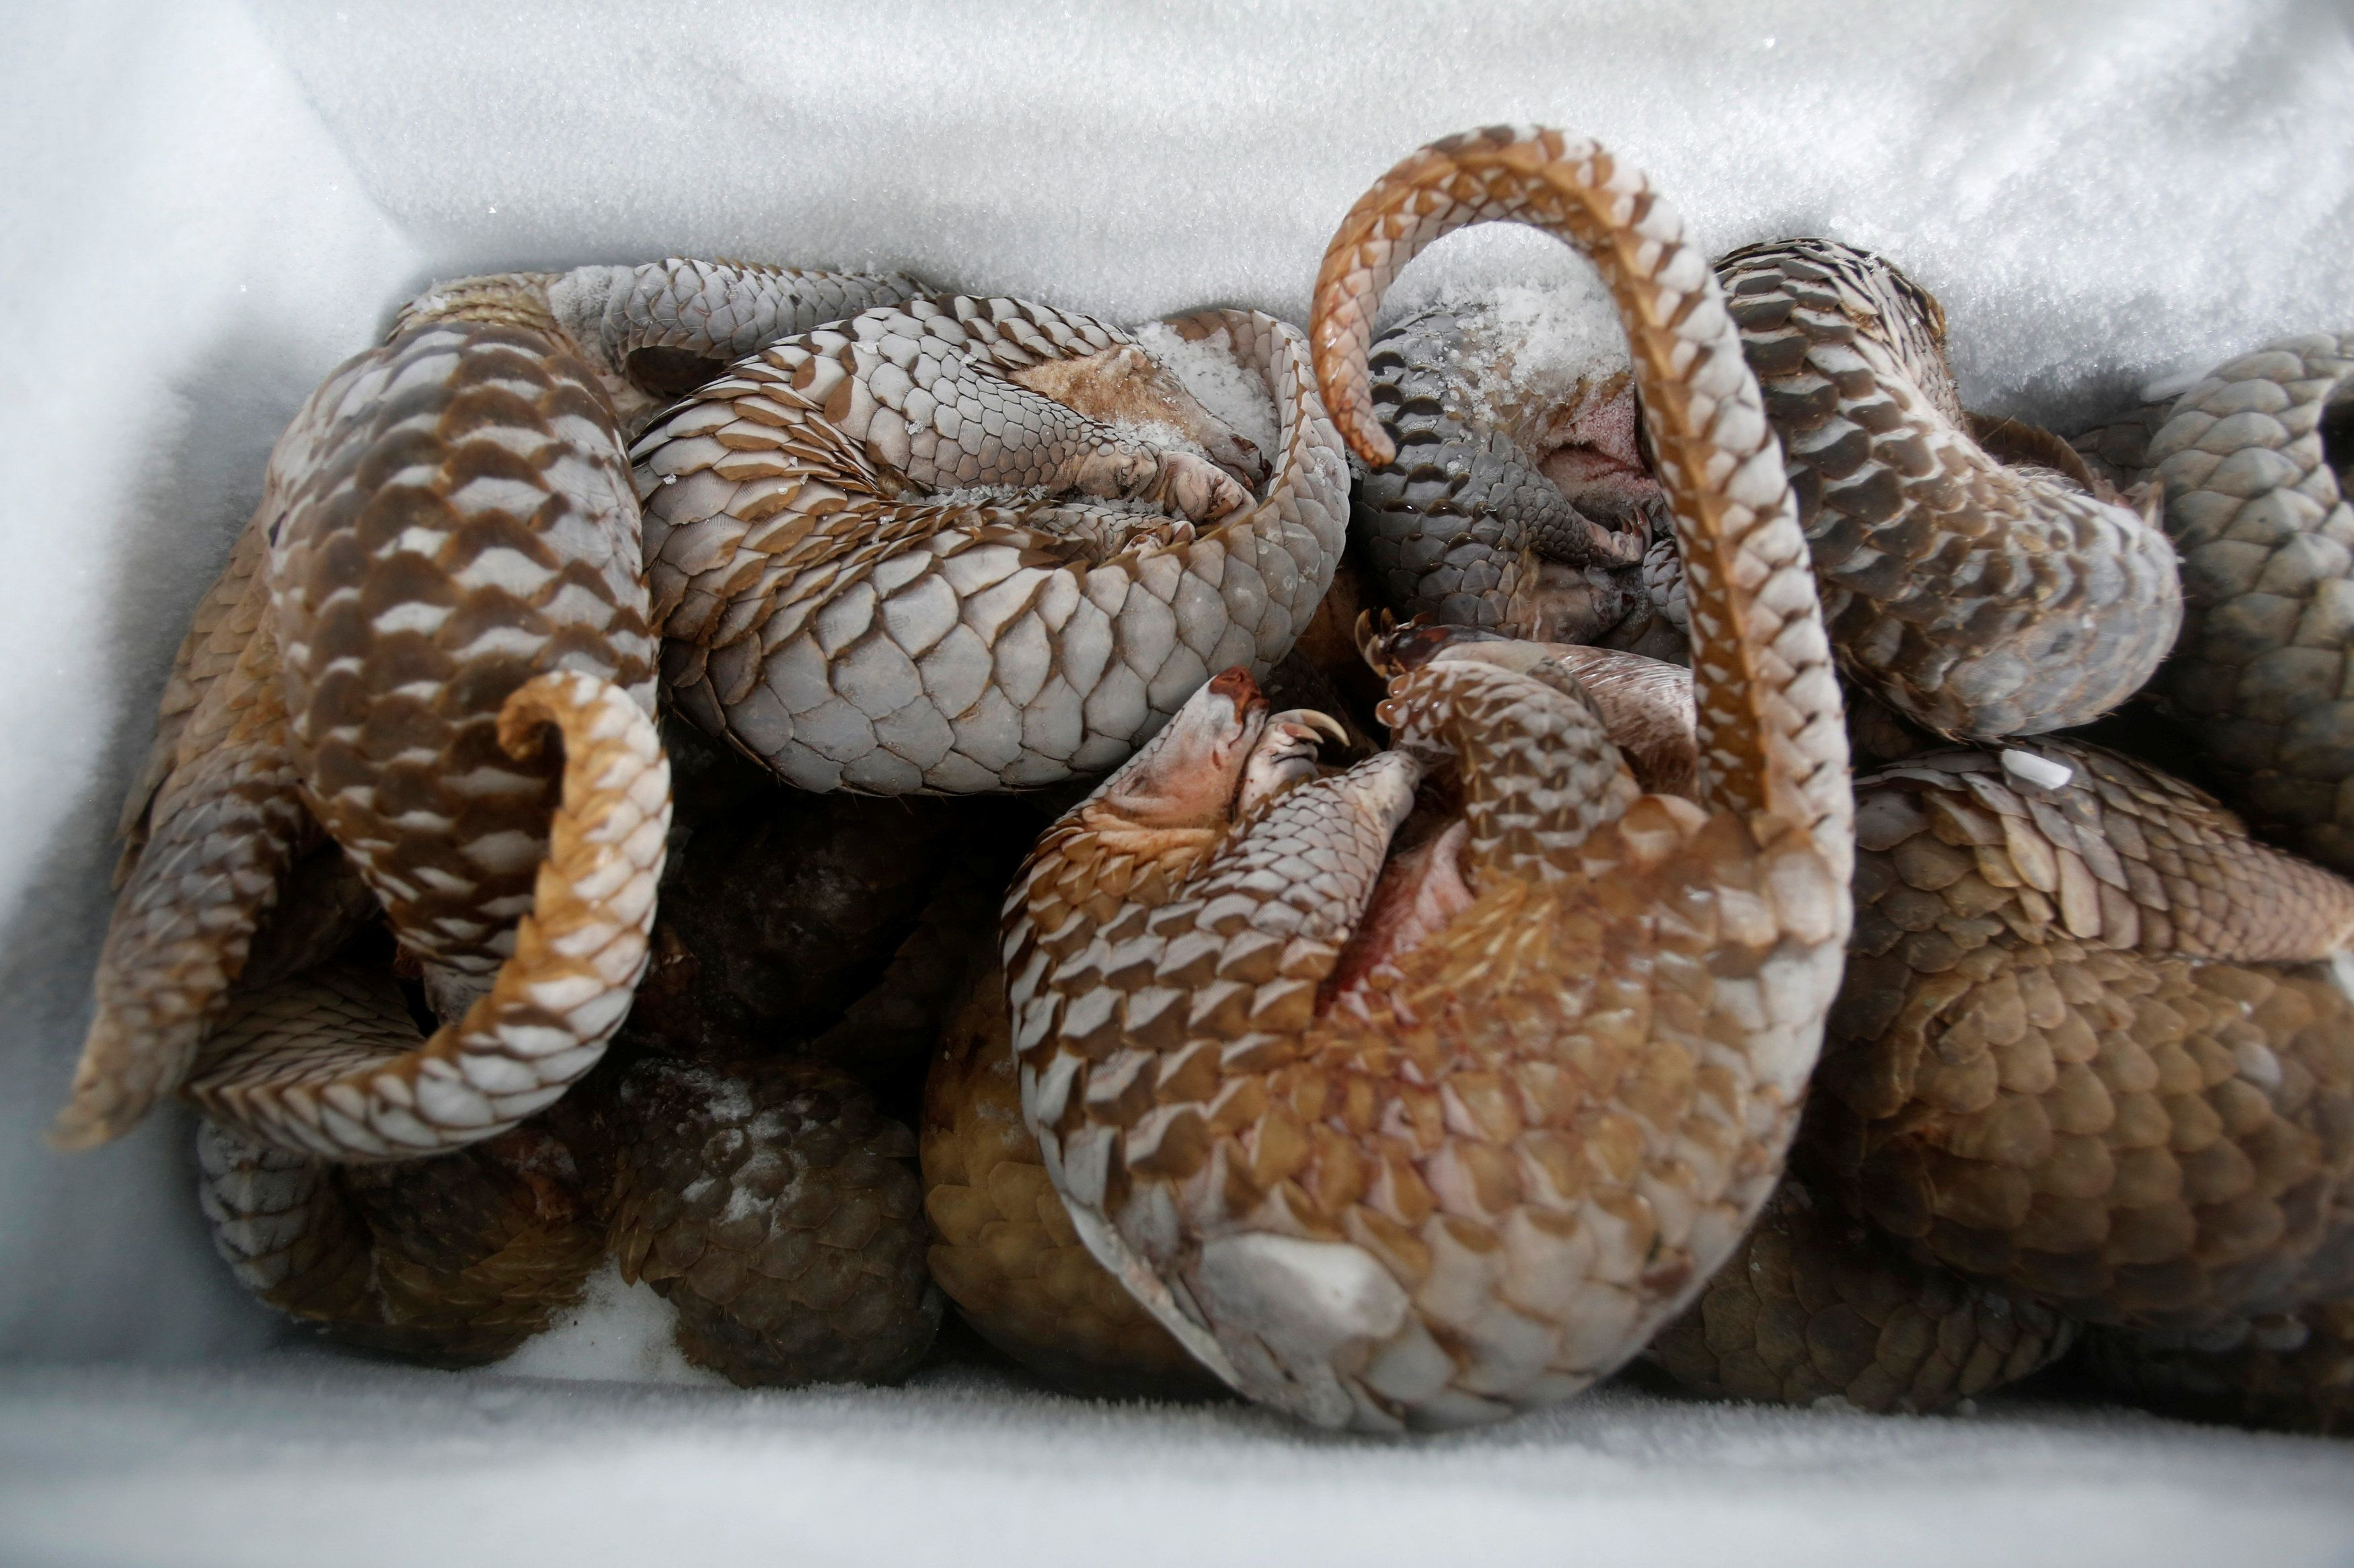 The pangolin was one species highlighted in the recent bushmeat report. Pangolins, found in...